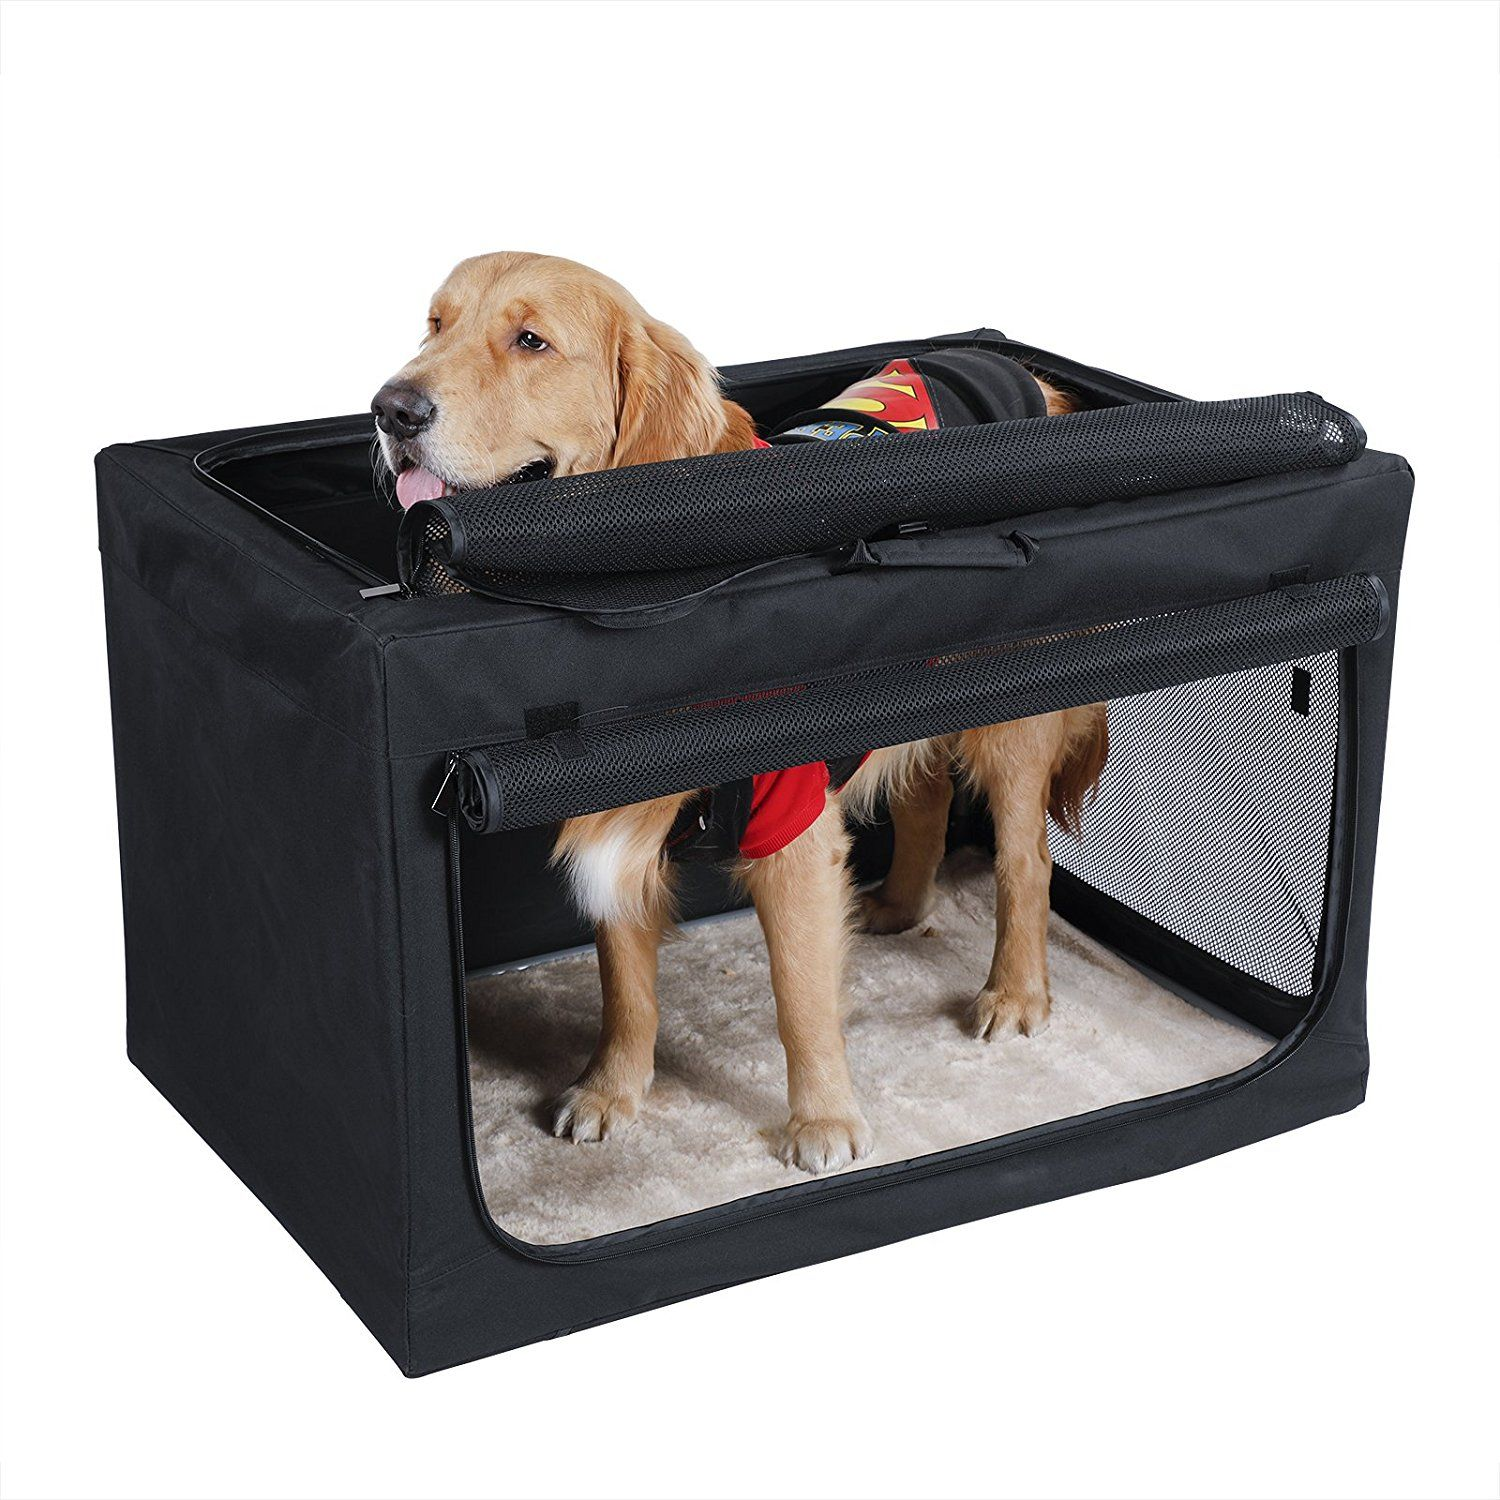 Petsfit Indoor Outdoor Soft Portable Foldable Travel Pet Dog Home Crate Cage Hope You Actually Do Enjoy Our Picture This Is An Affiliate Link